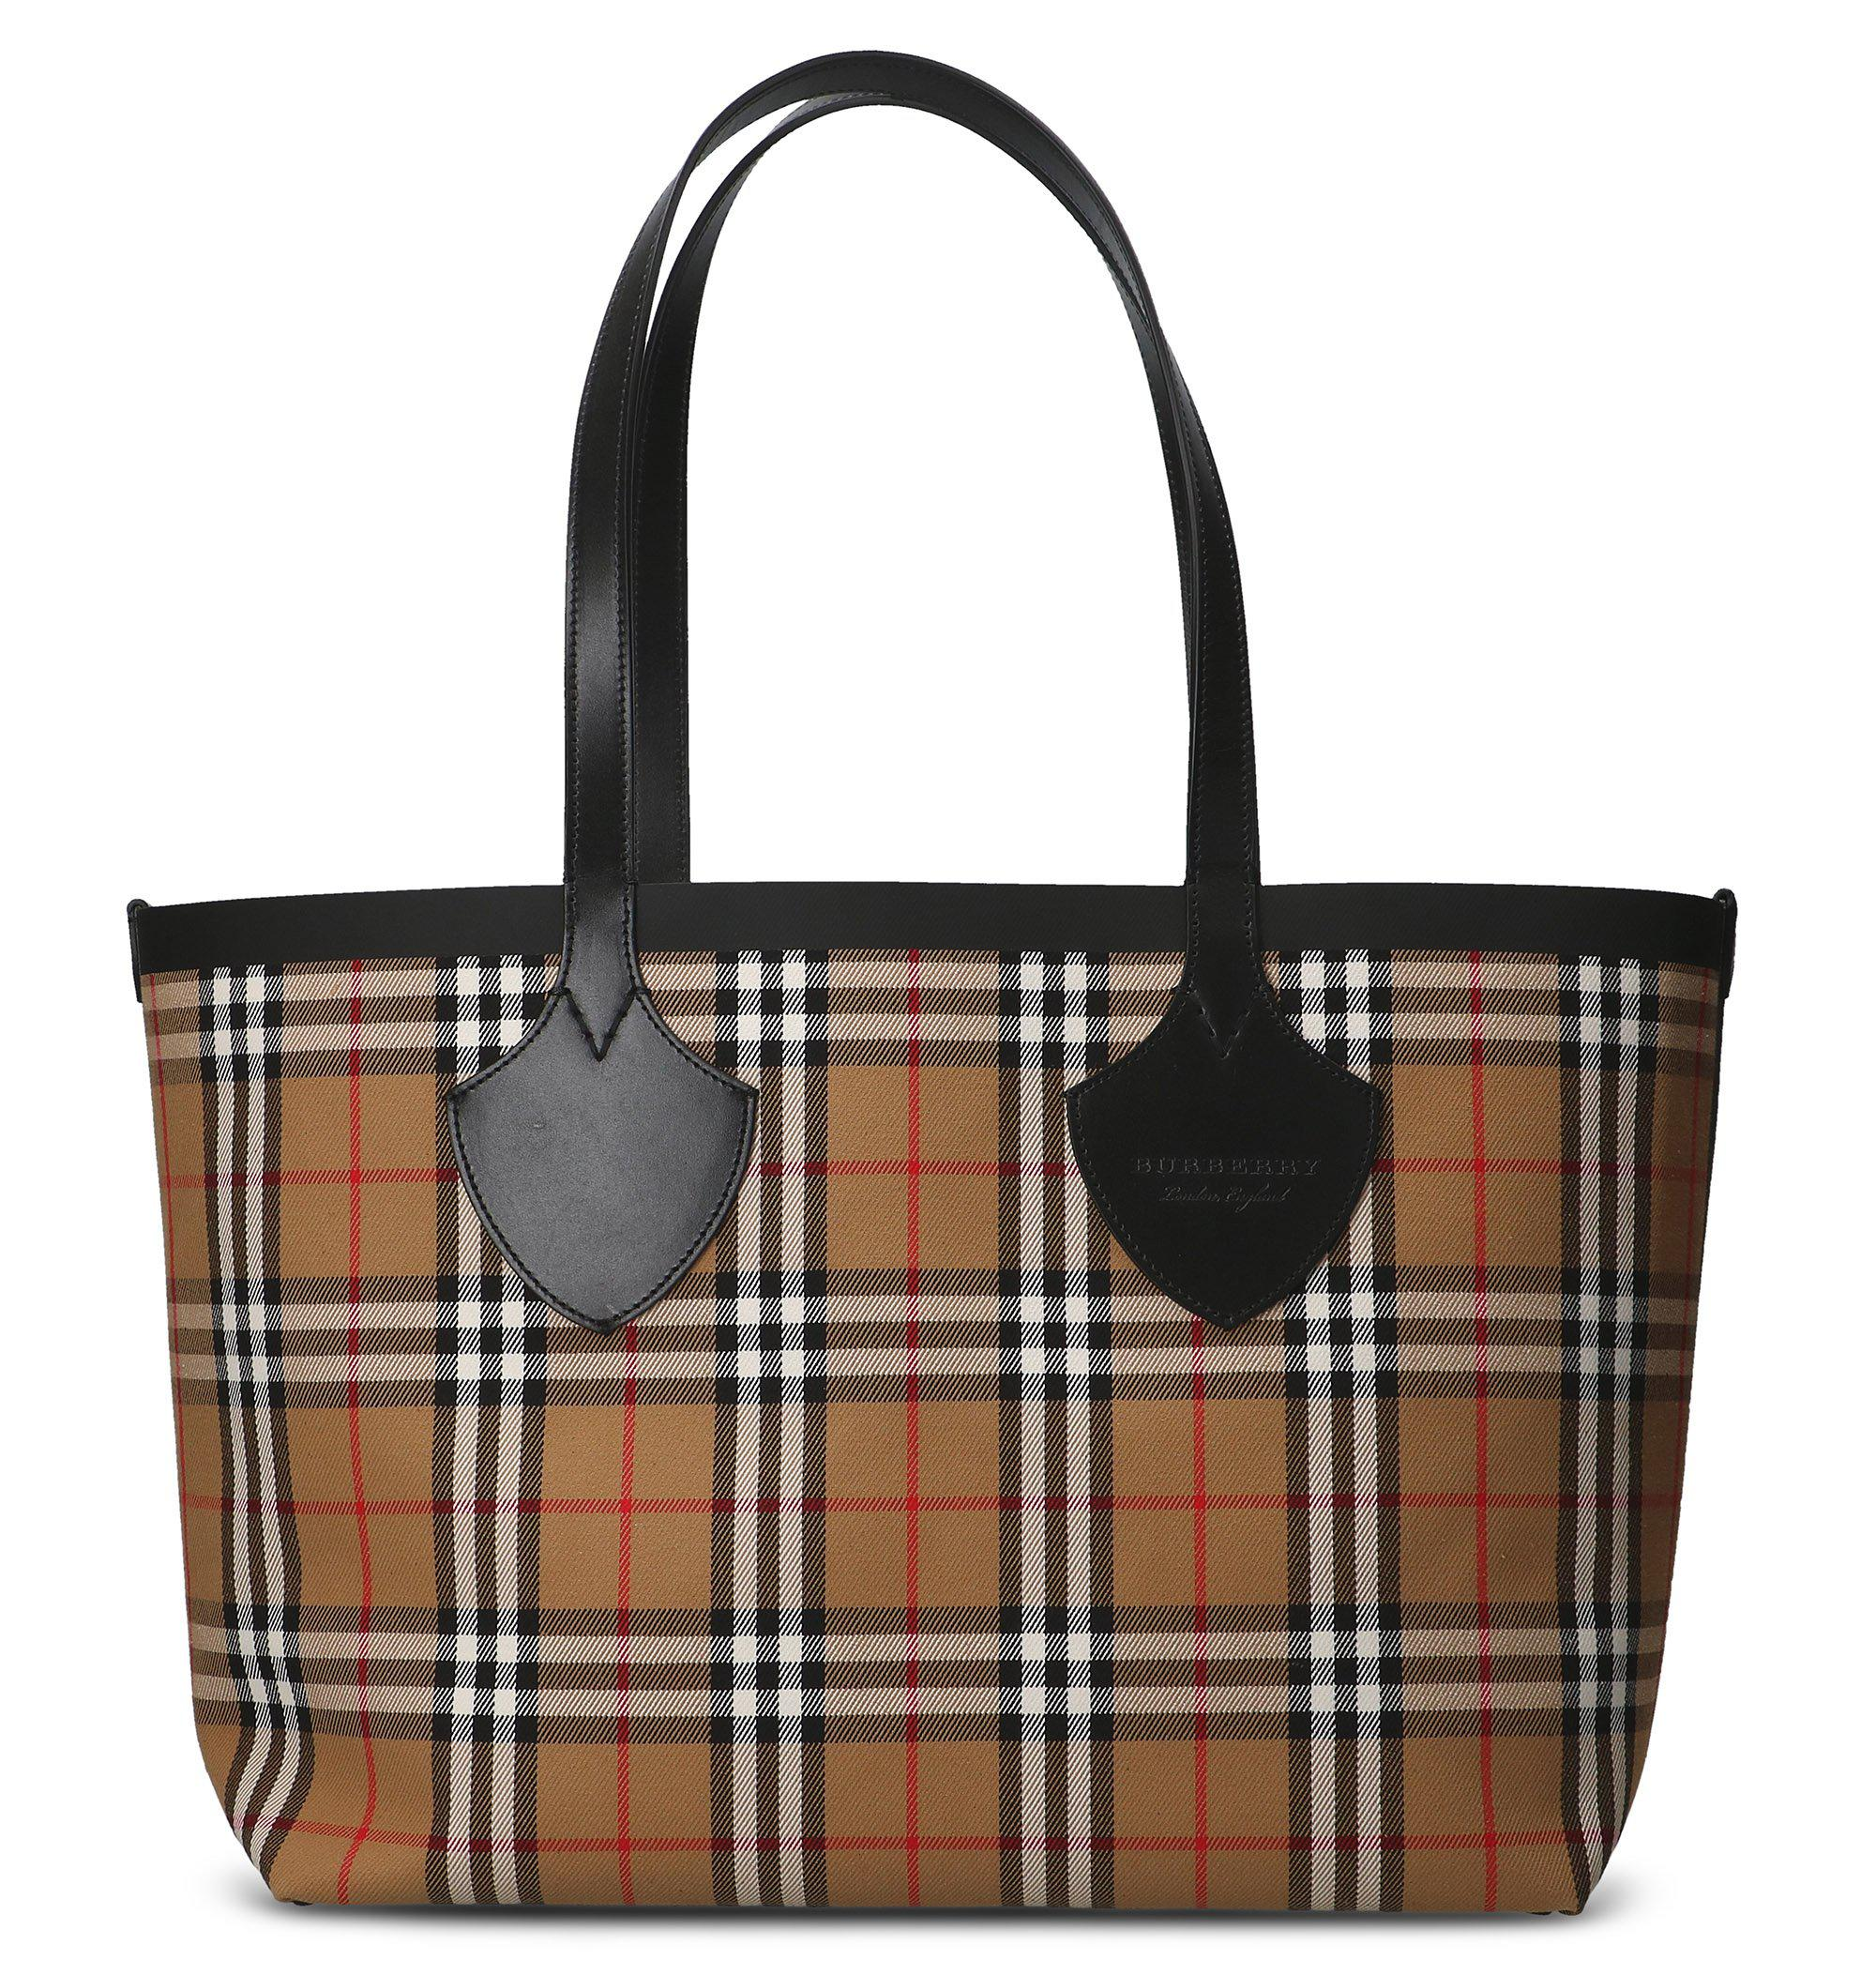 b5bb1d1eaccf Burberry - Multicolor Vintage Check Print Tote Bag - Lyst. View fullscreen